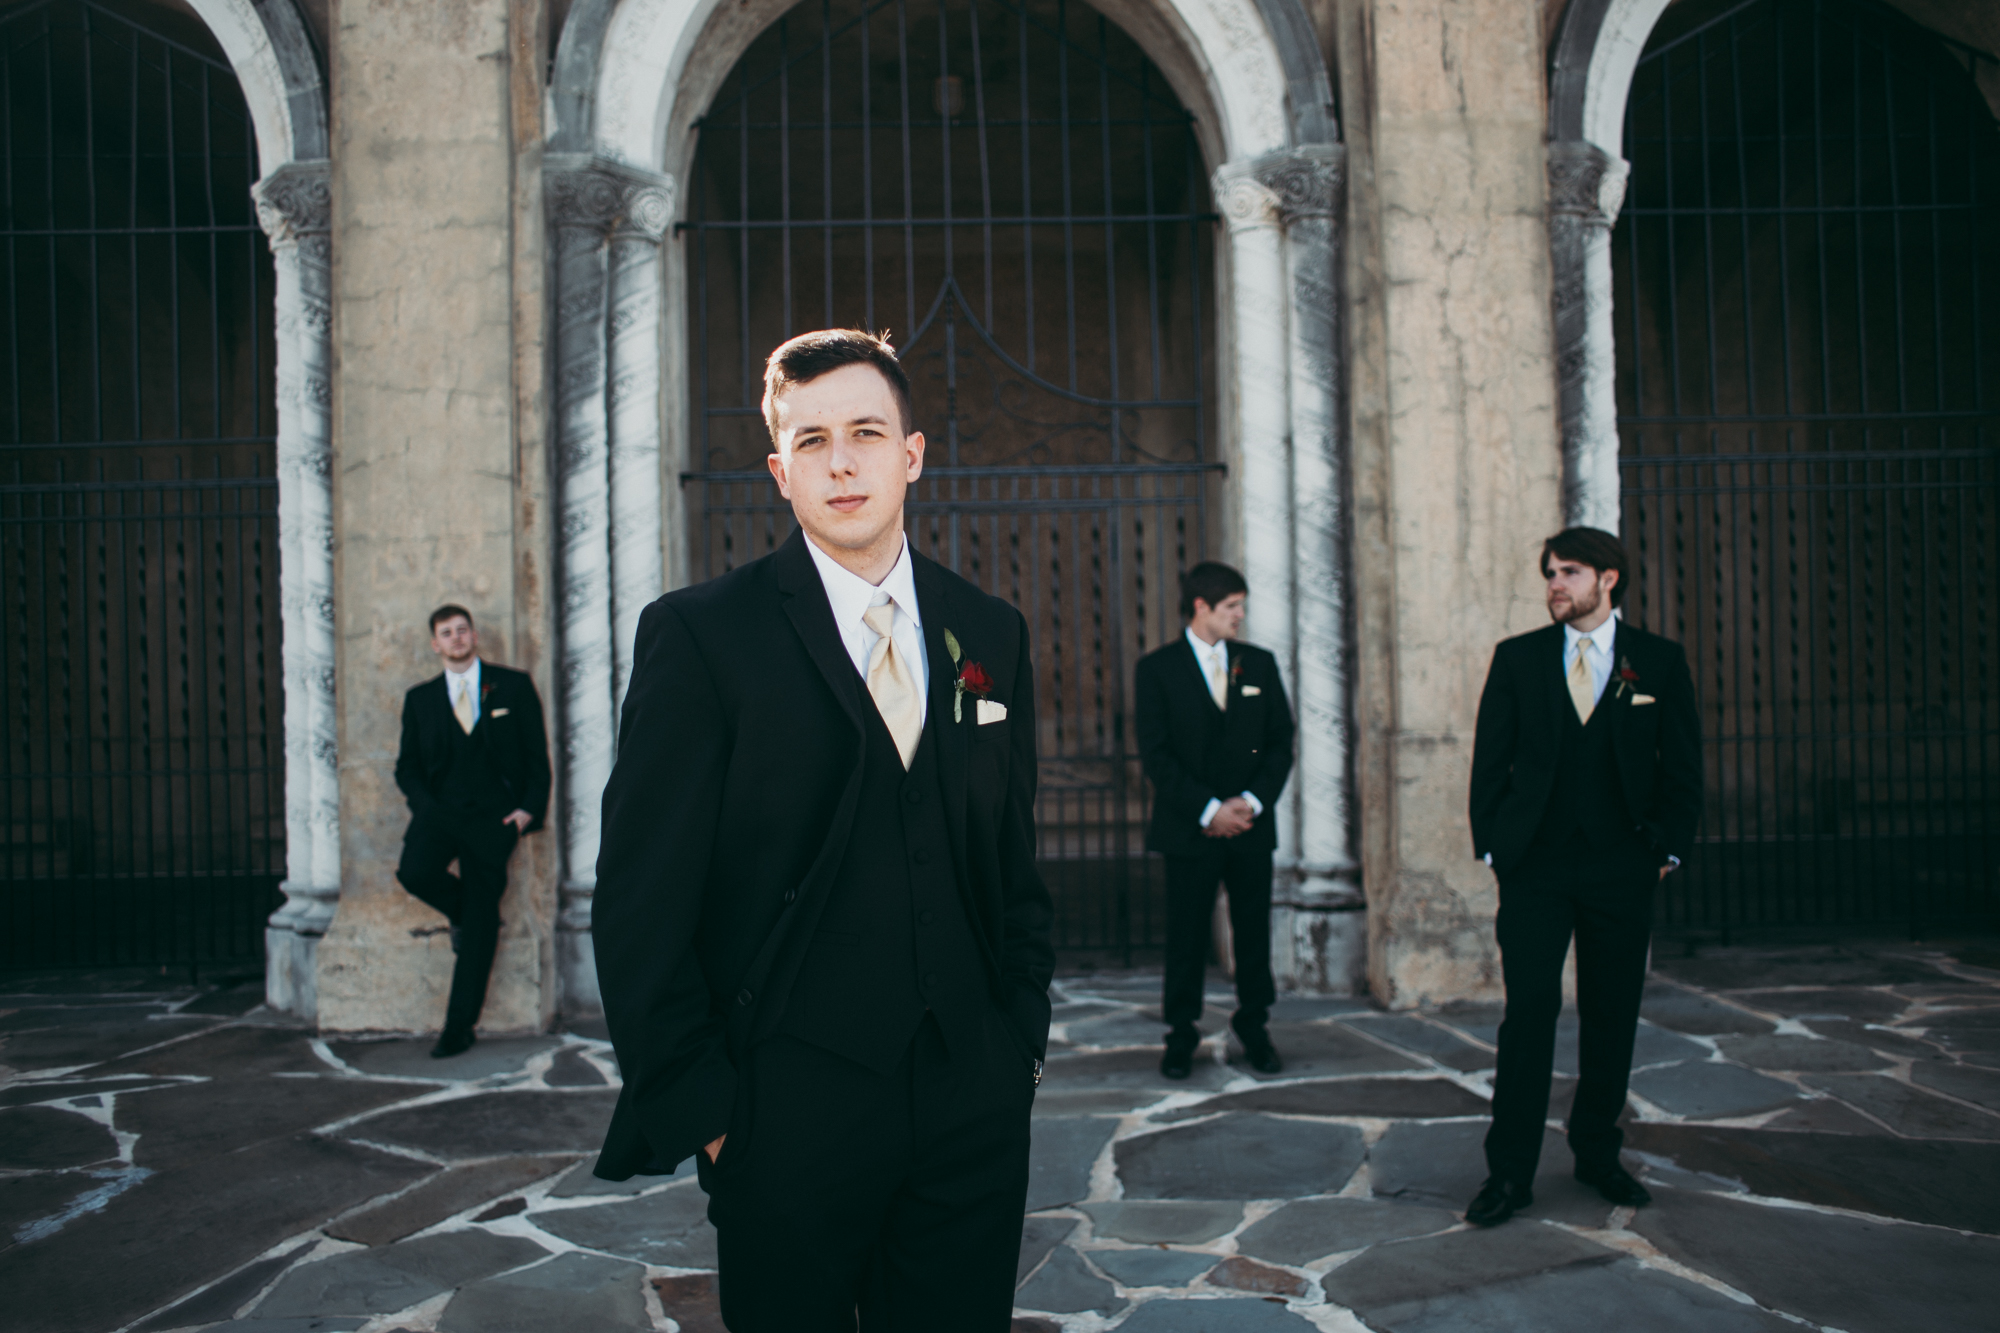 Three groomsmen and a groom standing in the shade wearing suits.